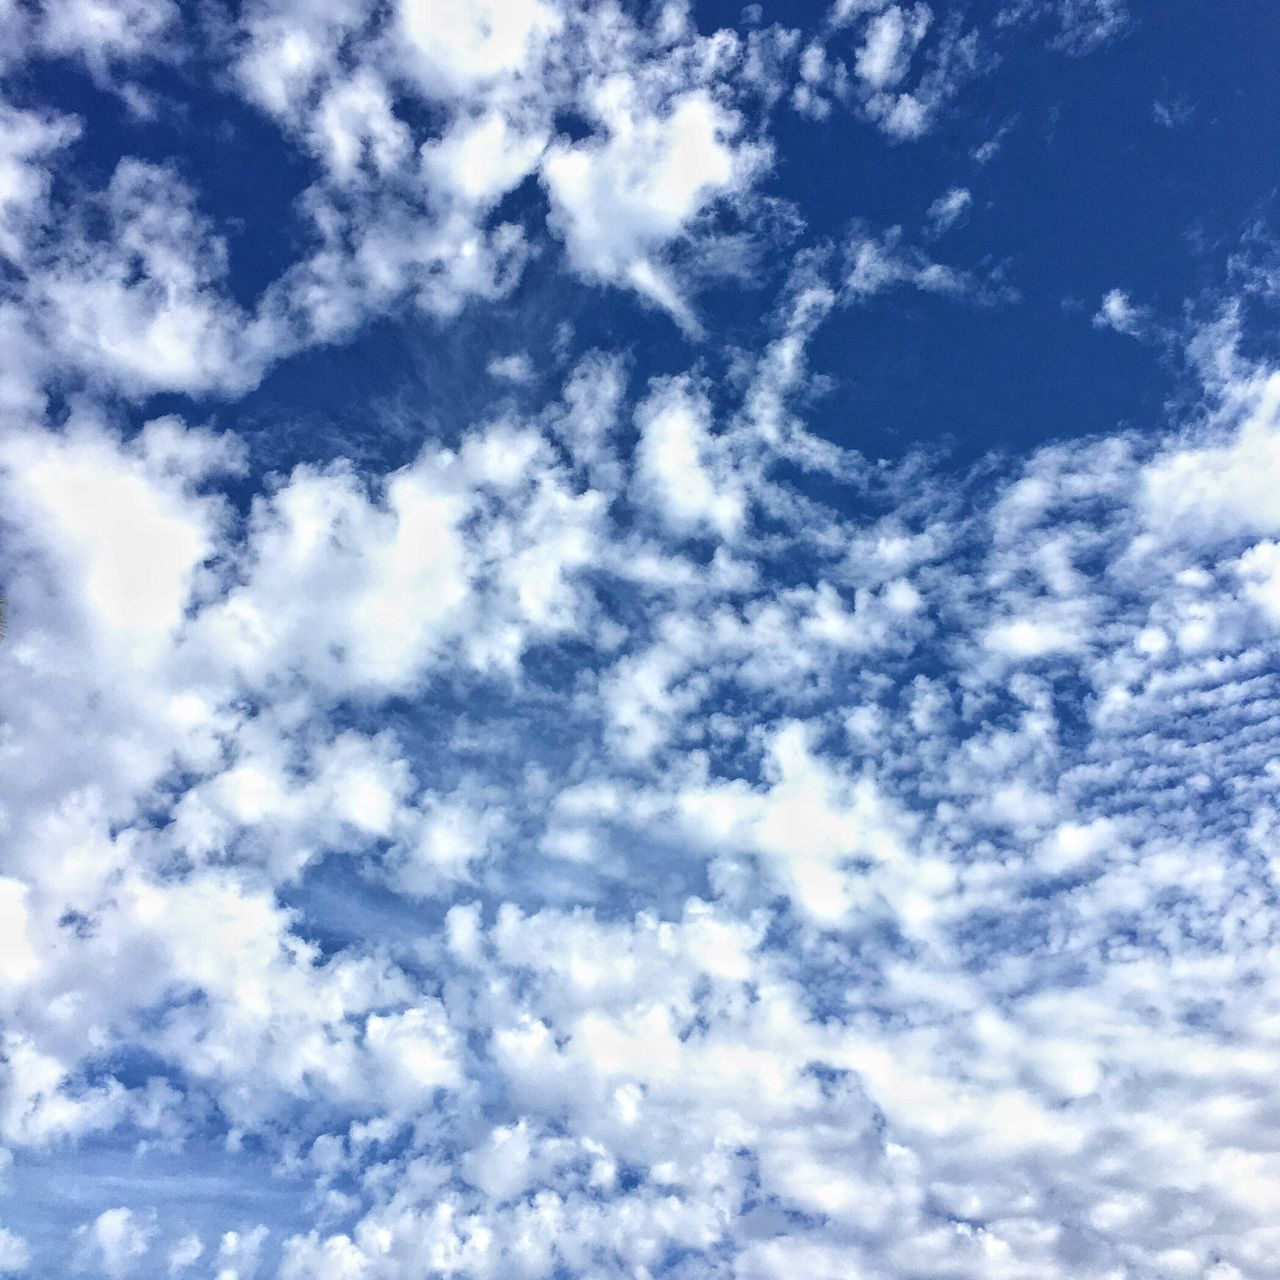 low angle view, sky, cloud - sky, backgrounds, beauty in nature, nature, blue, cloudscape, sky only, full frame, scenics, day, no people, tranquility, outdoors, tranquil scene